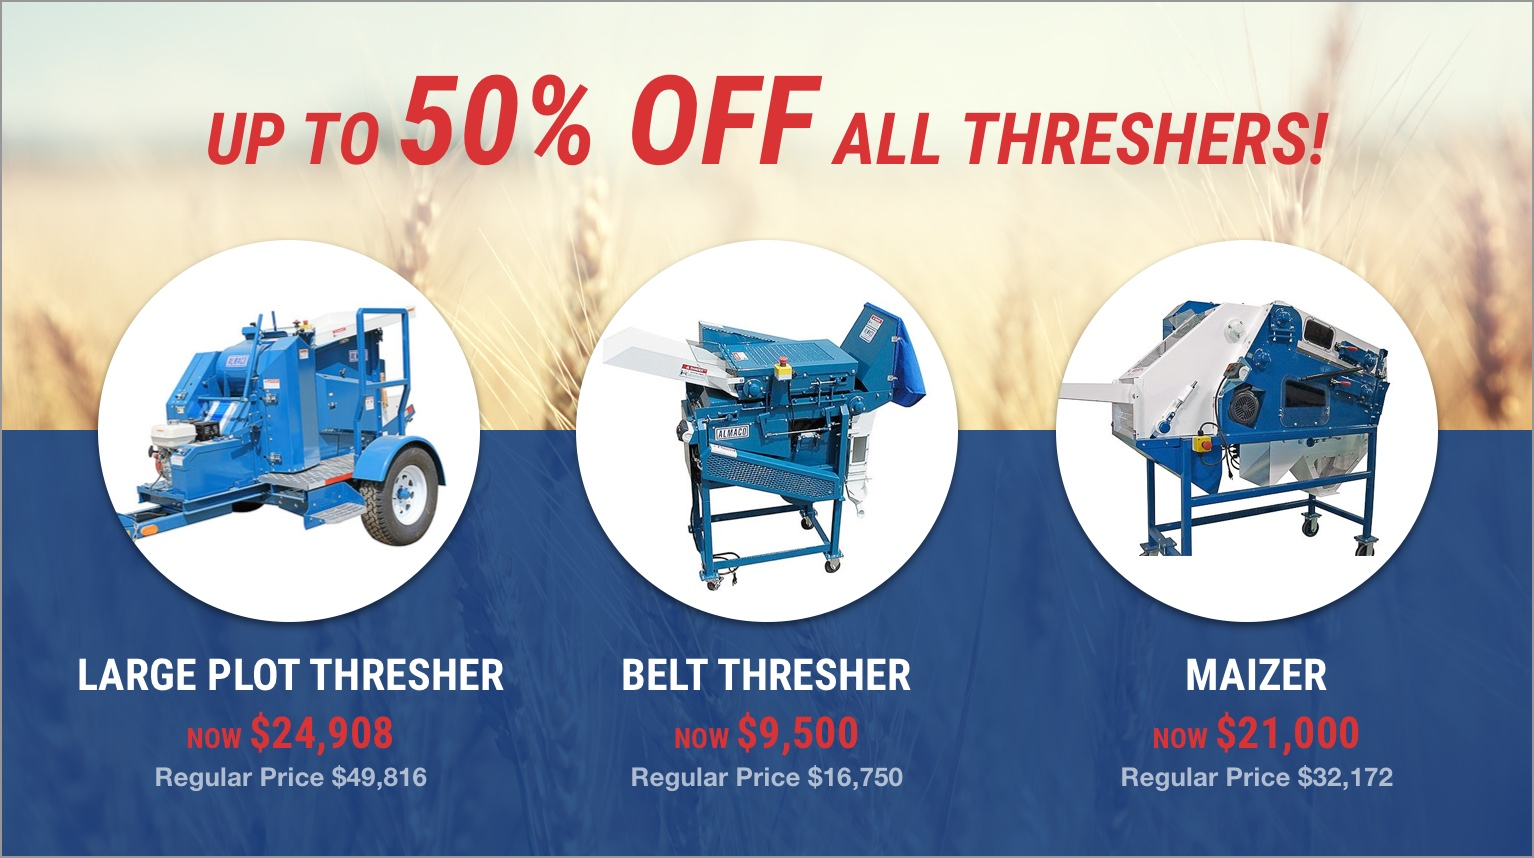 Up to 50% OFF all Threshers!